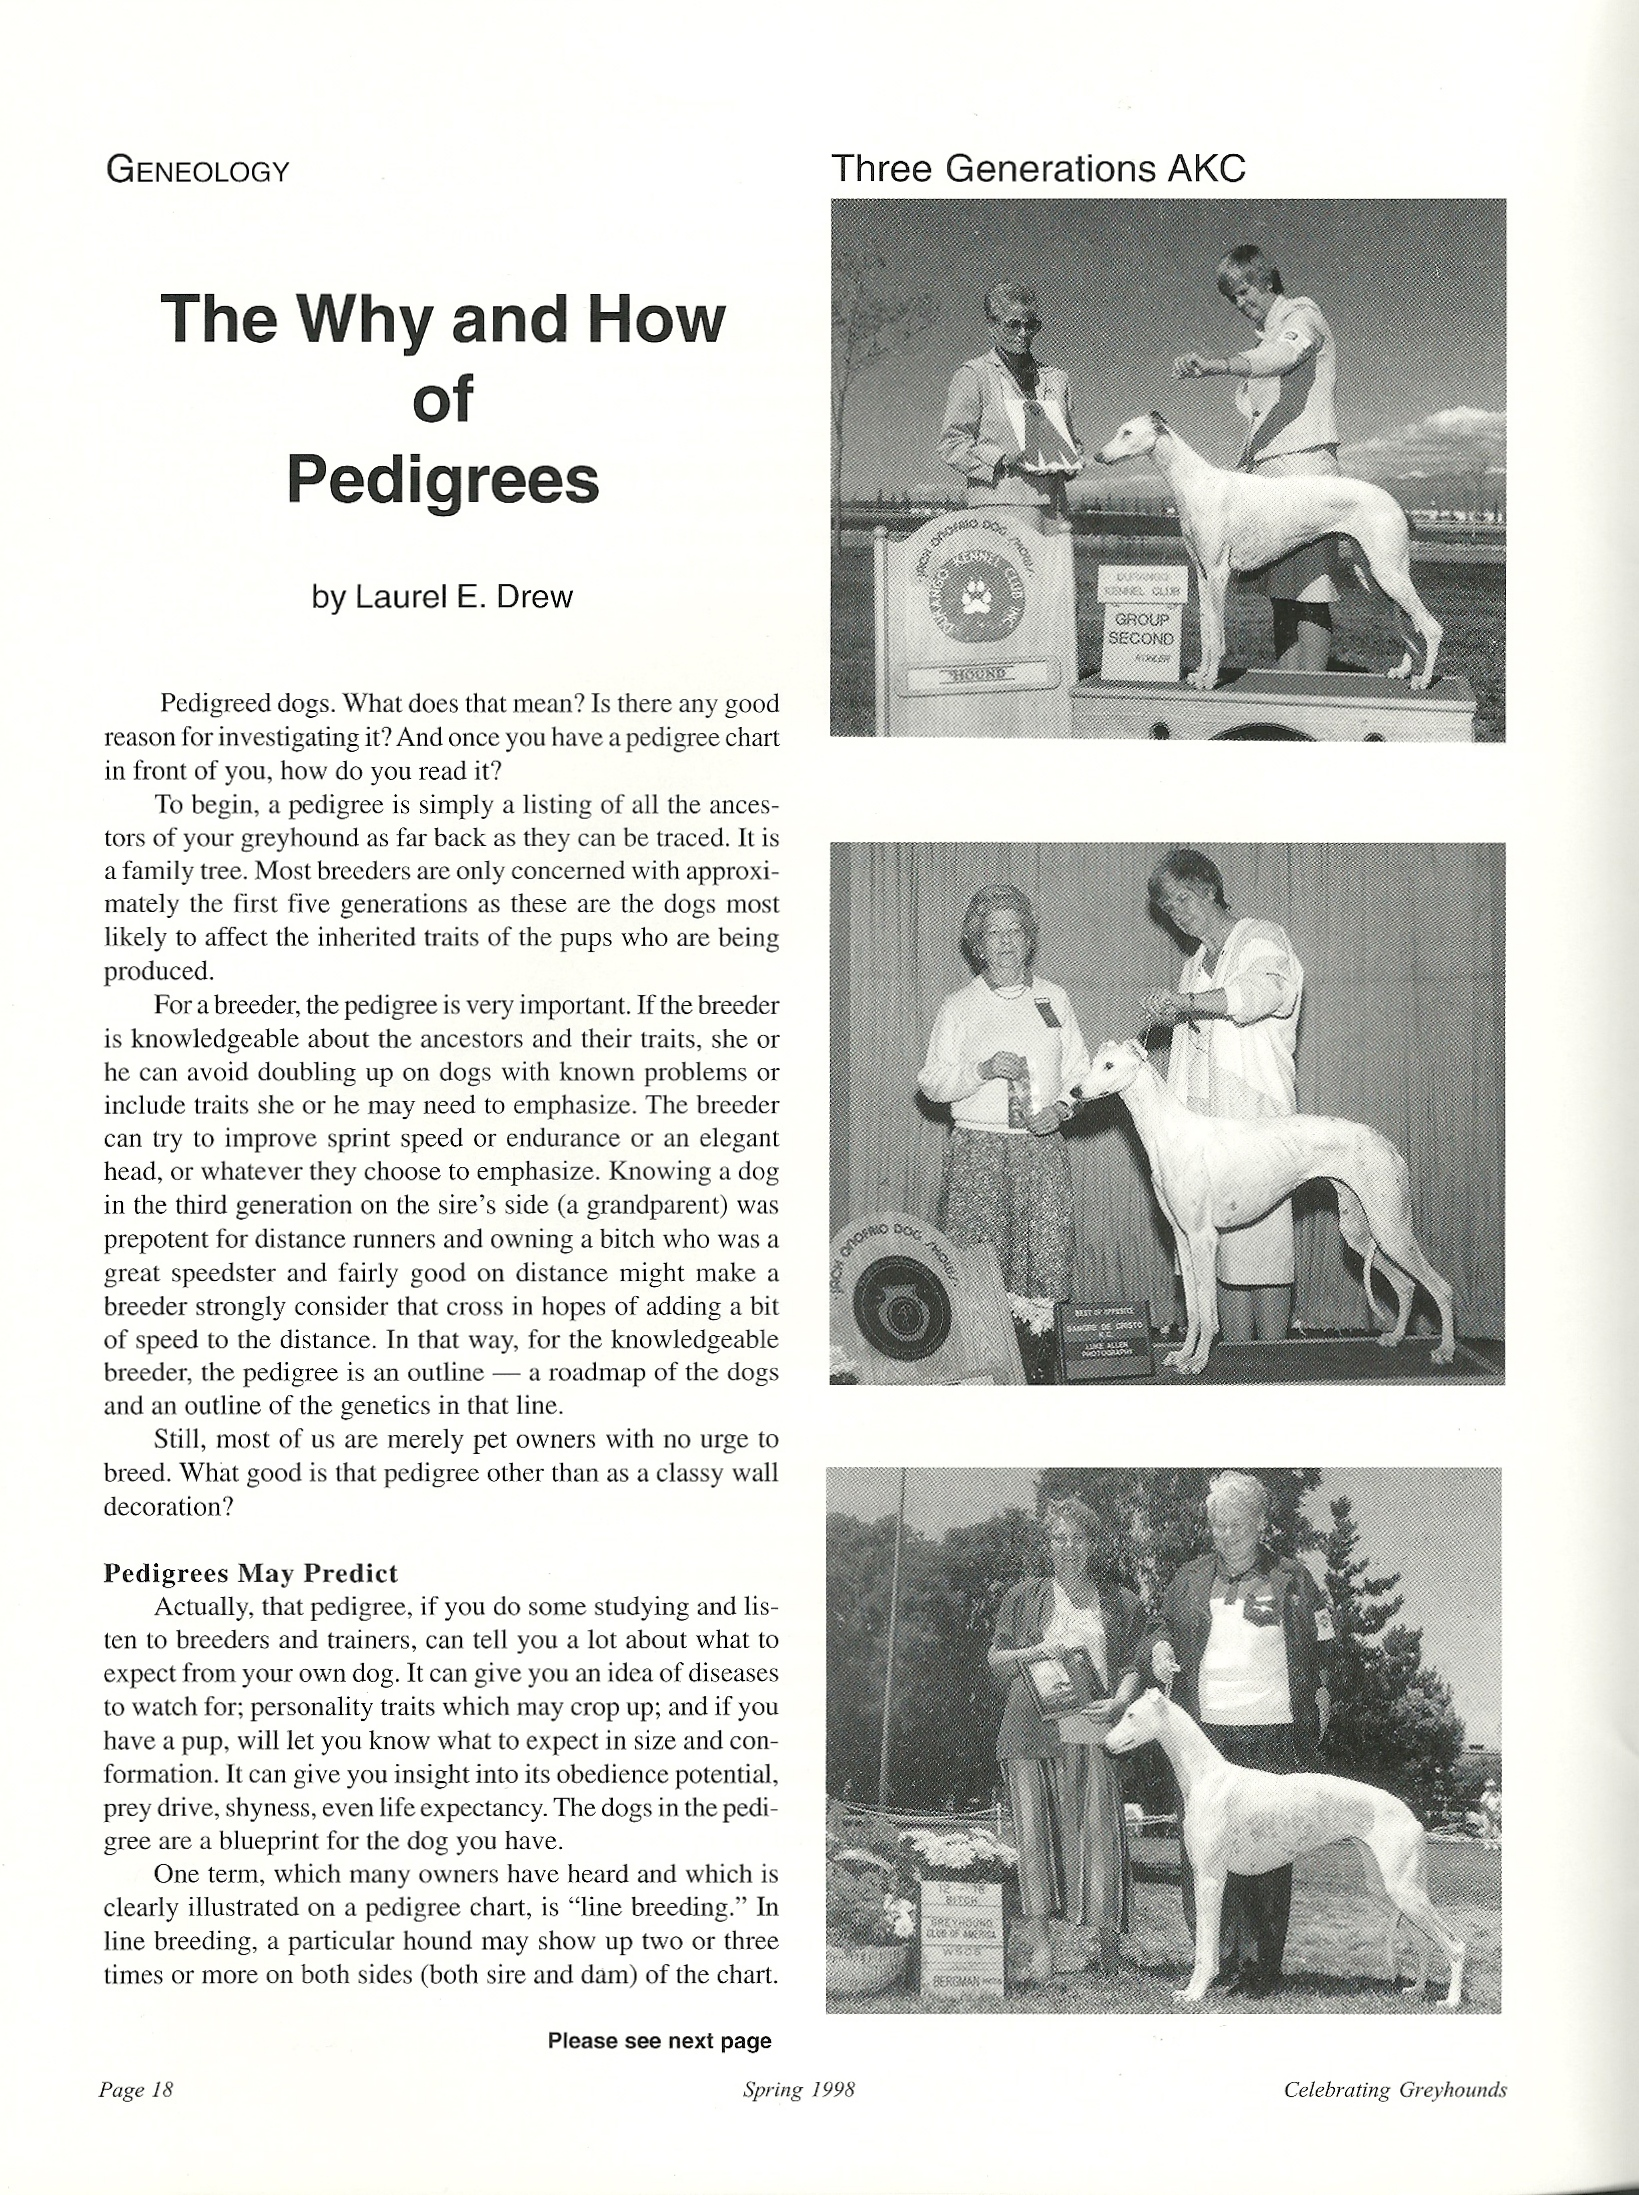 The Why and How of Pedigrees and How to Read a Pedigree Chart ...